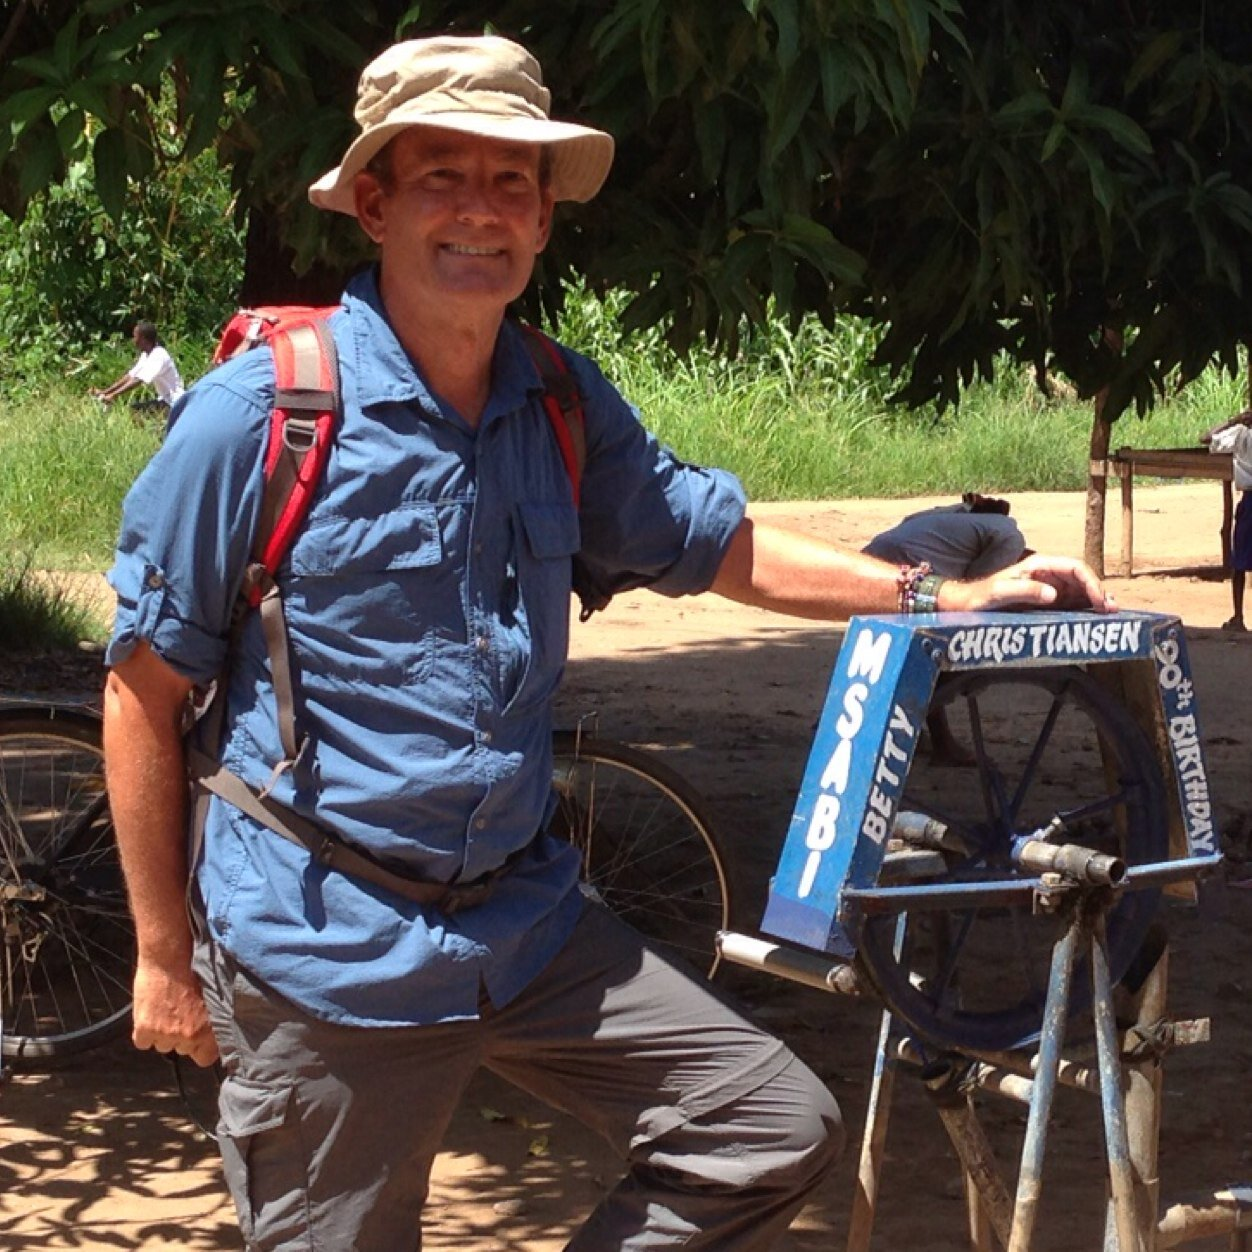 Keith working with MSABI (Maji Safi kwa Afya Bora Ifakara - Safe water for Better Health!) in Tanzania